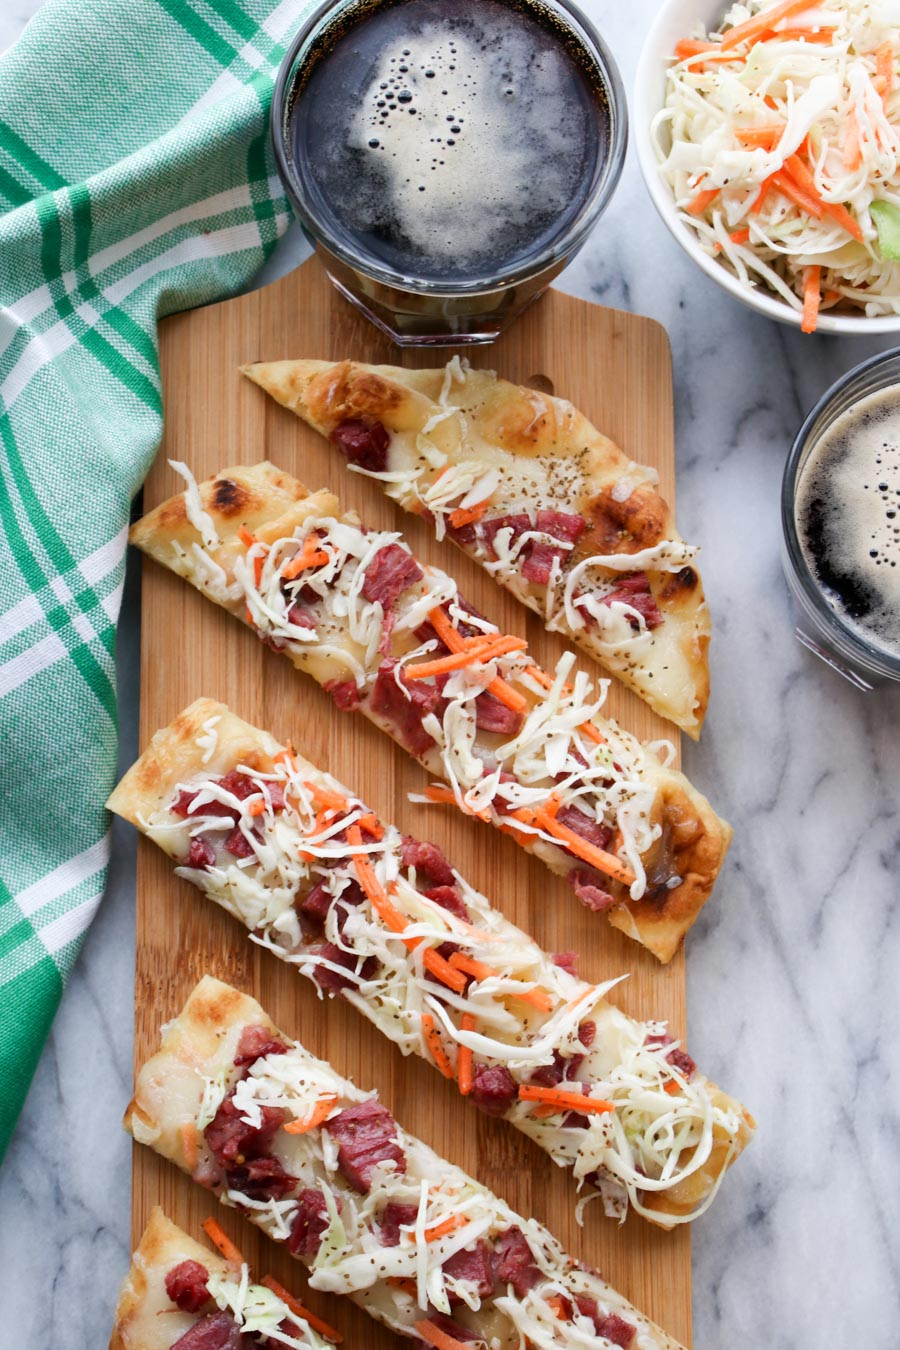 Corned beef flatbread on a wood board, with a bowl of slaw and two dark beers